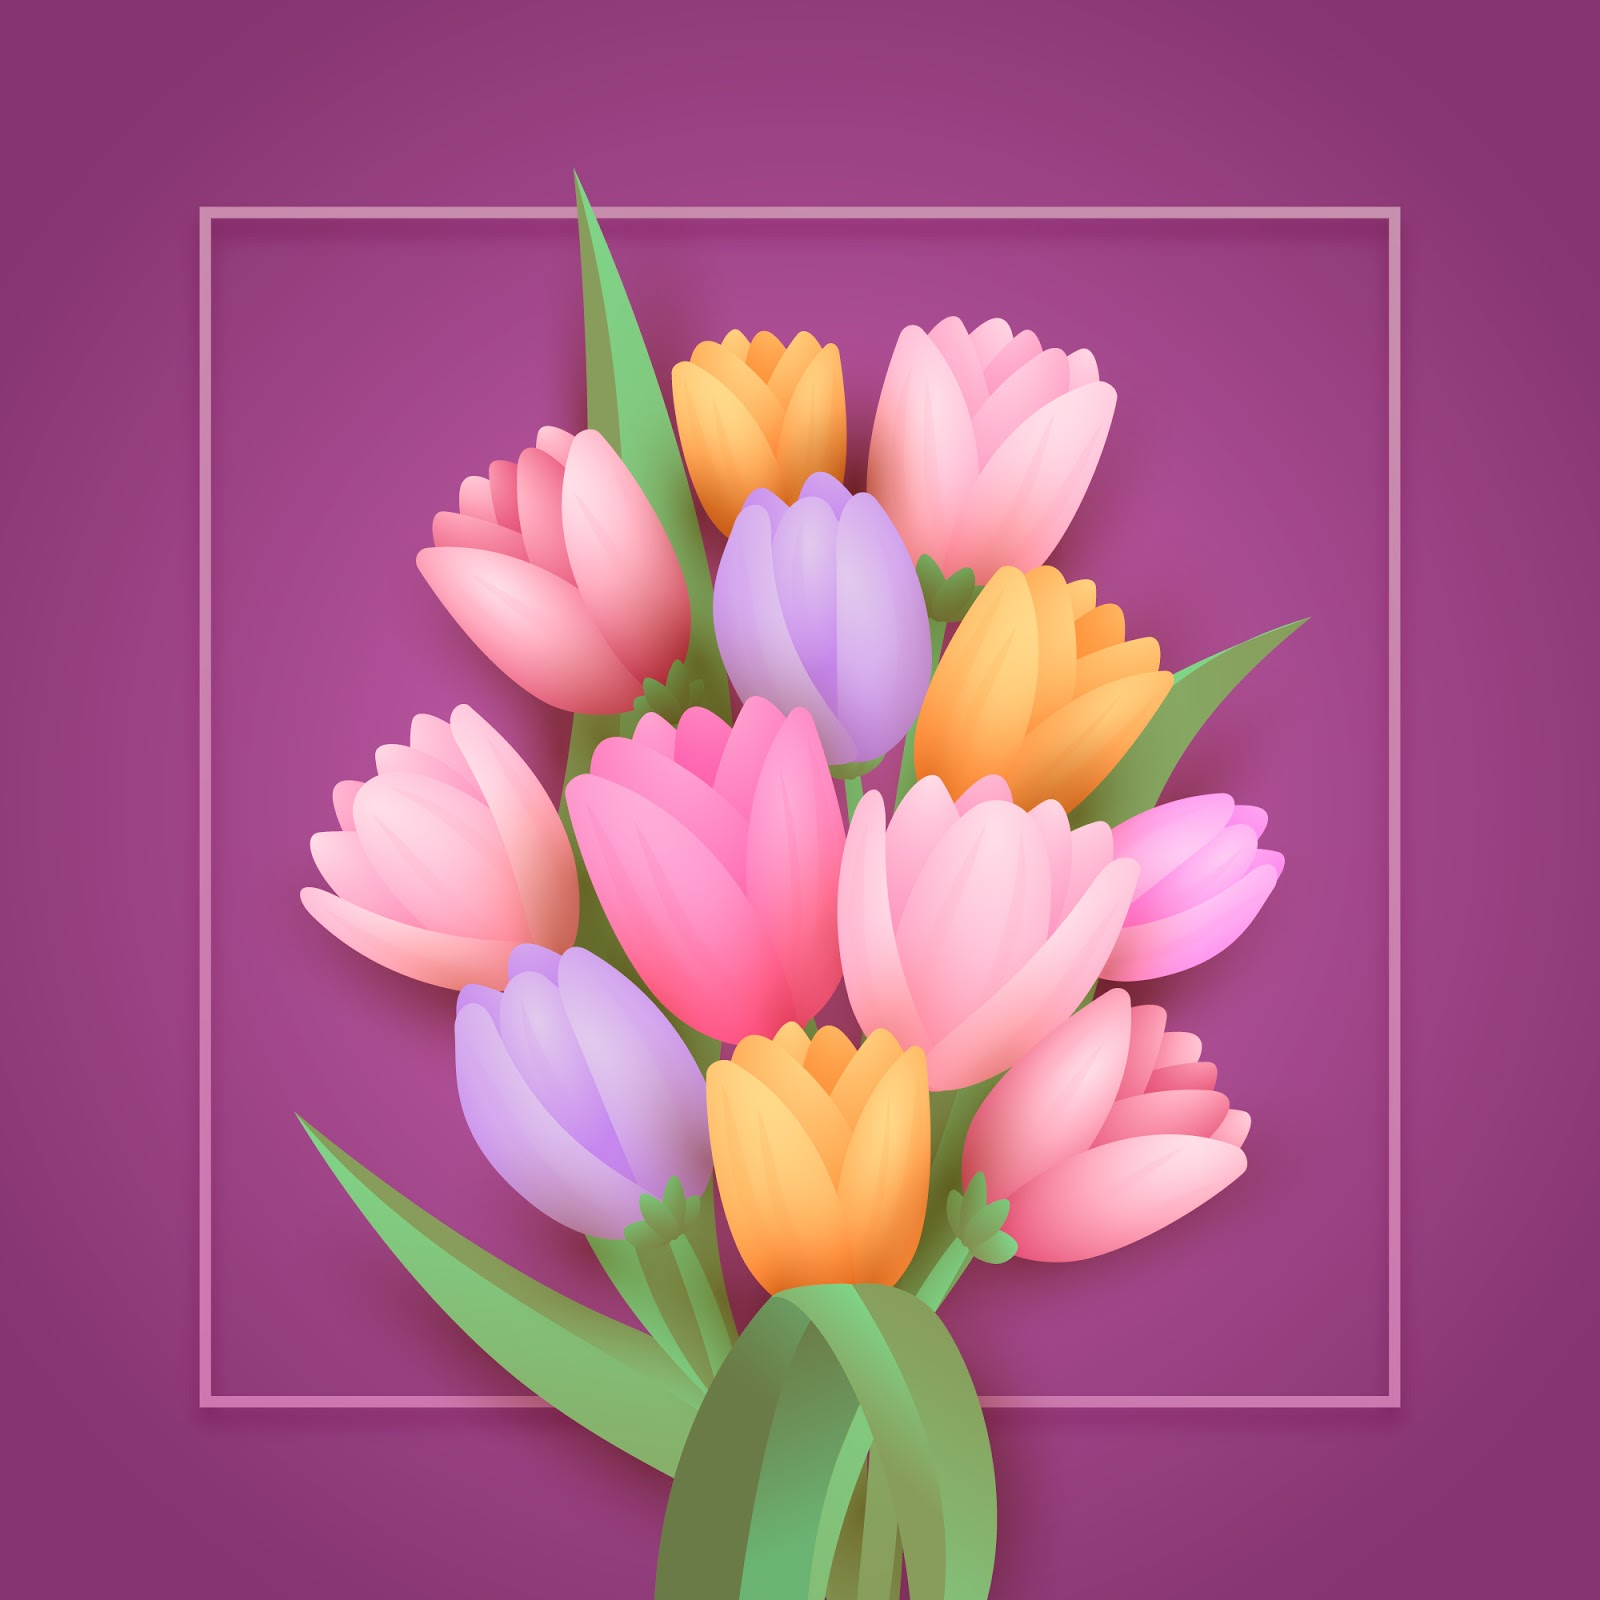 Gradient Paper Style Flowers Free Download Vector CDR, AI, EPS and PNG Formats